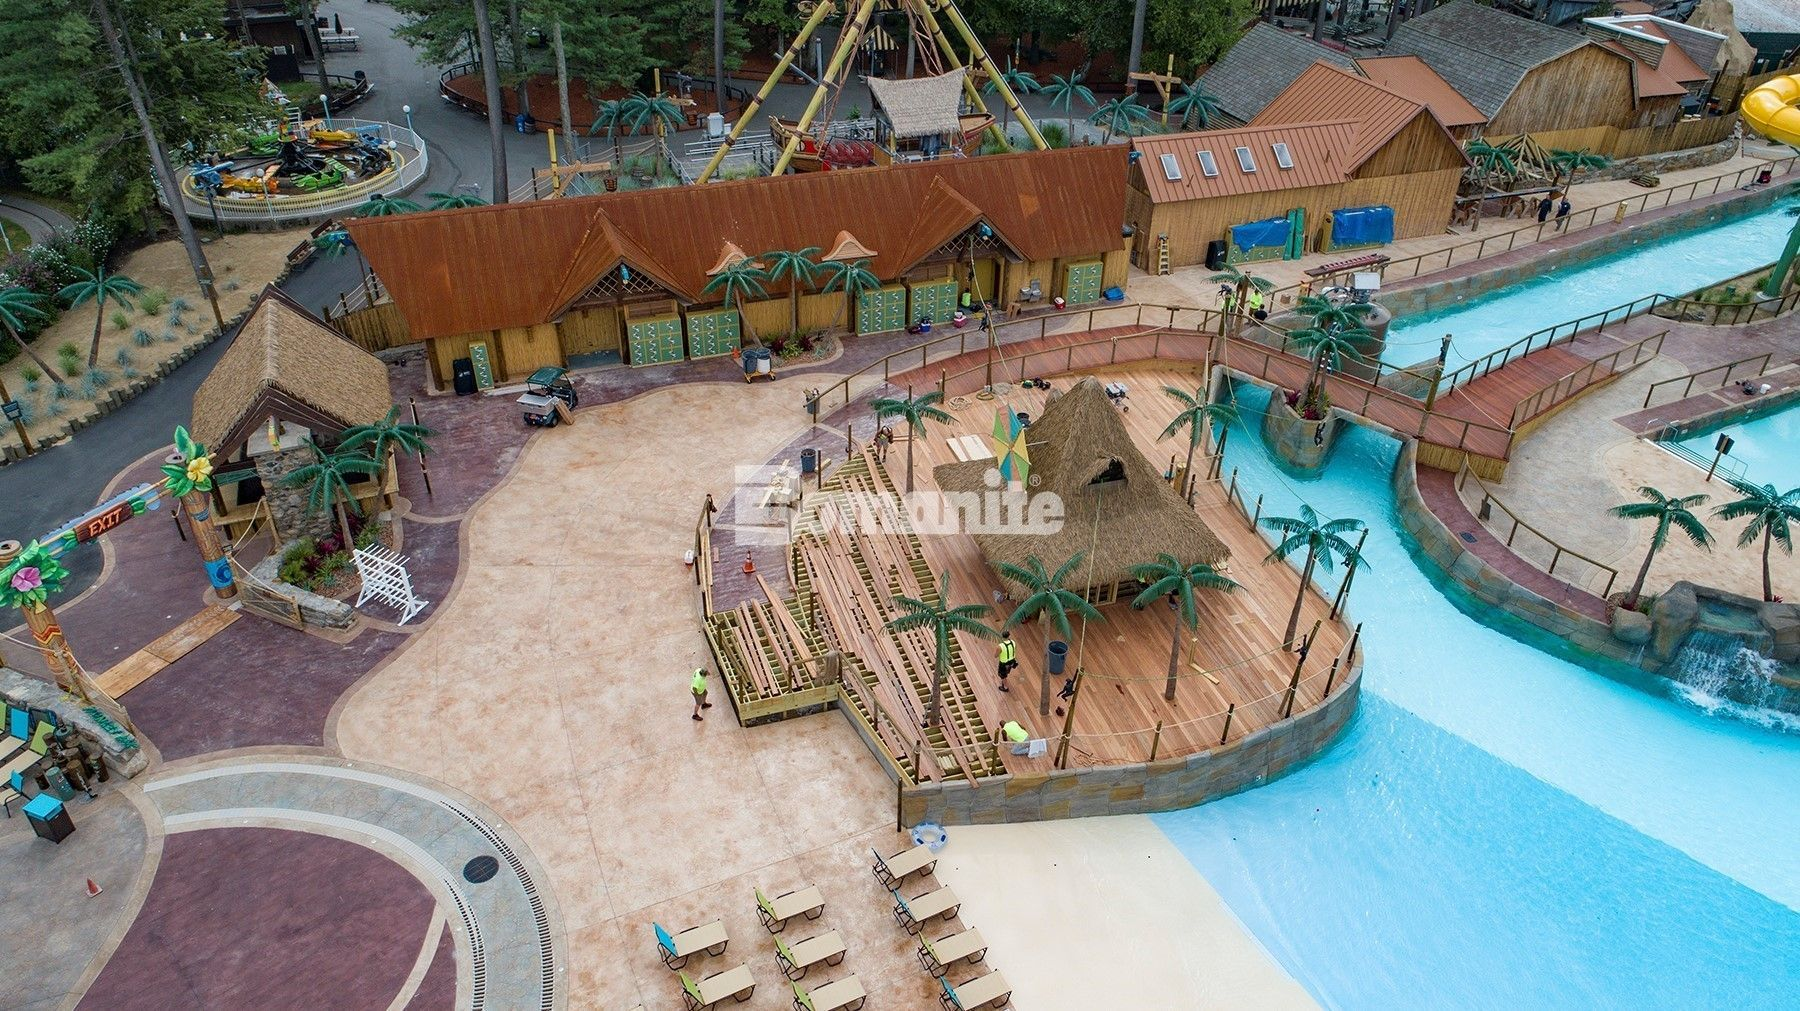 Castaway Island-Canobie Lake Park decorative concrete project by Harrington Bomanite Corp. is a Bomanite Imprint Systems 2018 Gold Award and Bomanite Systems Project 2018 GRAND AWARD winner.